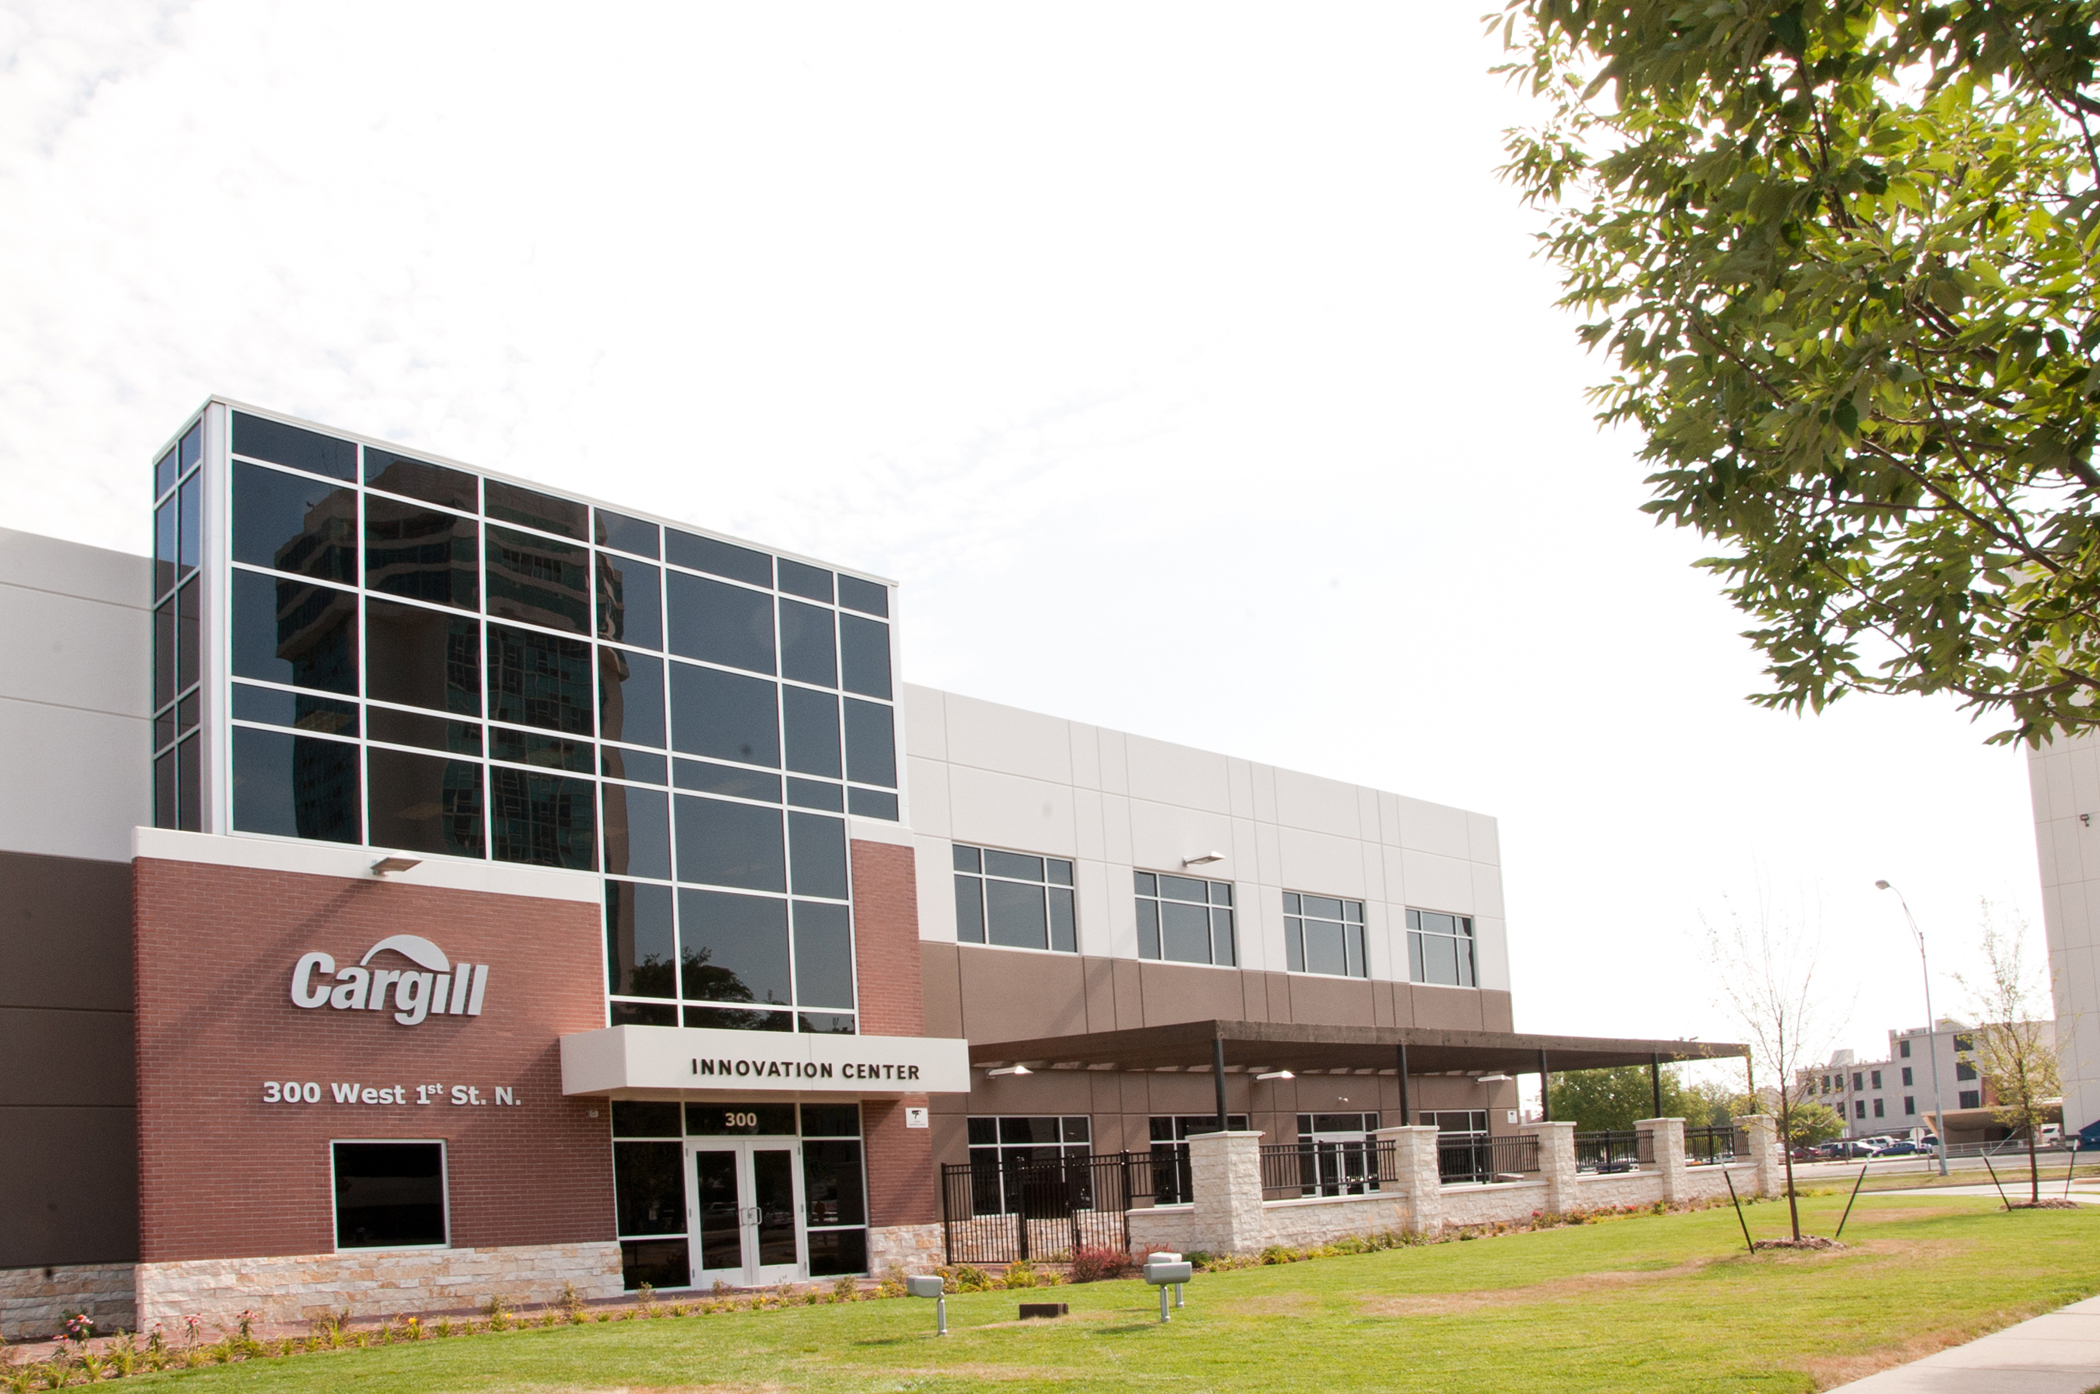 Cargill's Innovation Center in Wichita